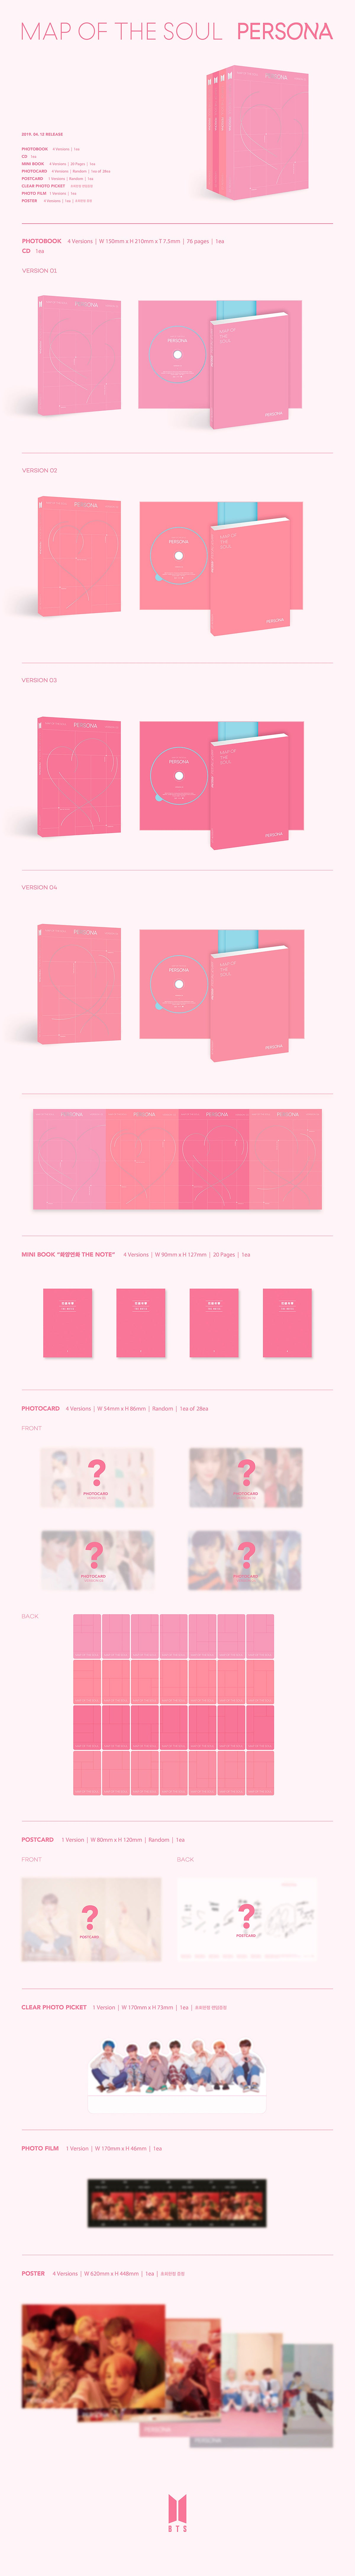 BTS Map of the Soul Persona Infographic Photocards Poster CD Booklet Guide Version 1 2 3 4 Pre Order April